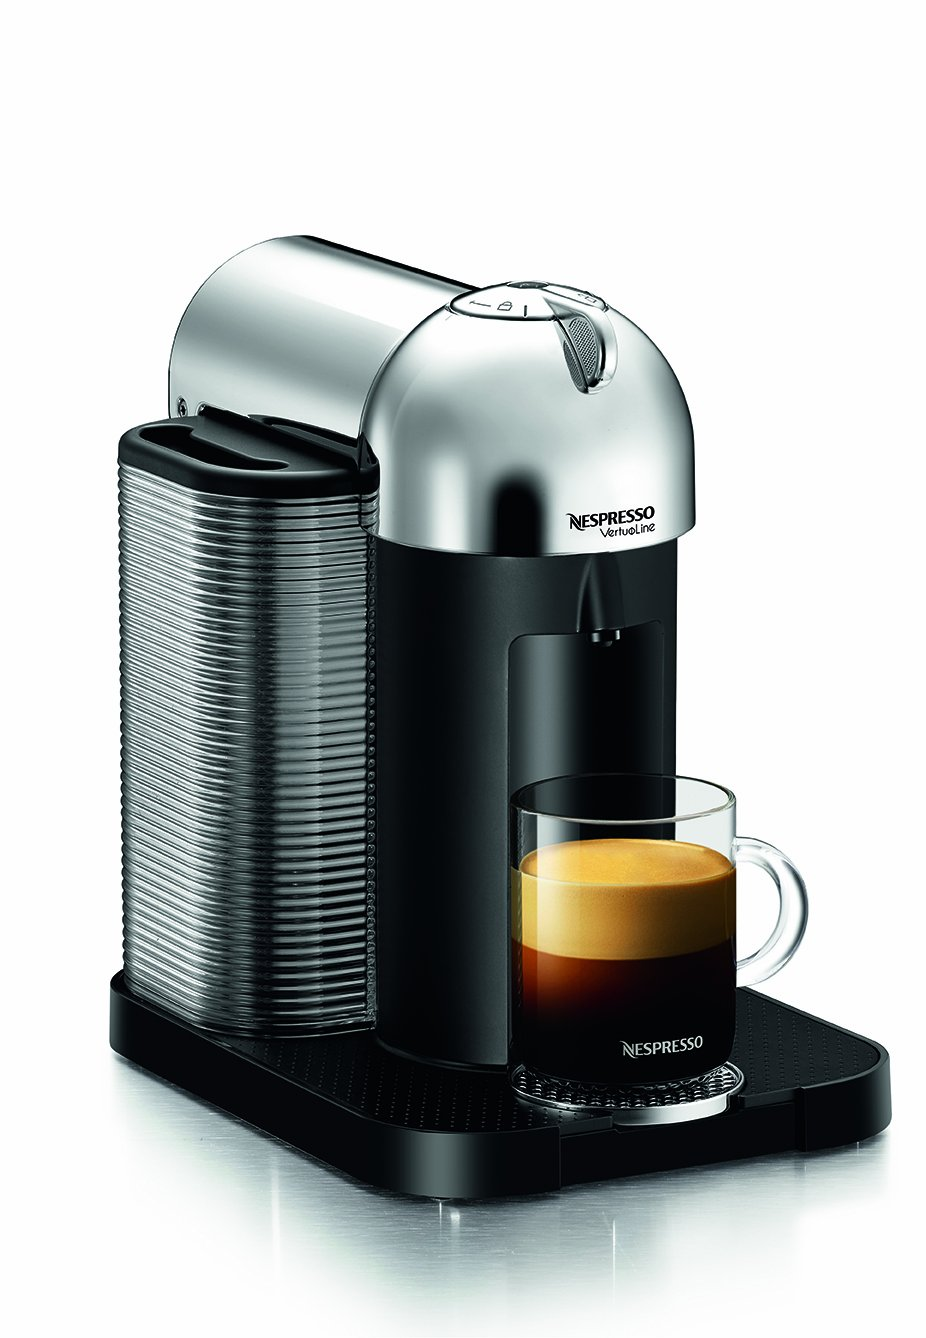 Top 10 Best Single Serve Coffee Maker (2020 Reviews & Buyer's Guide) 3